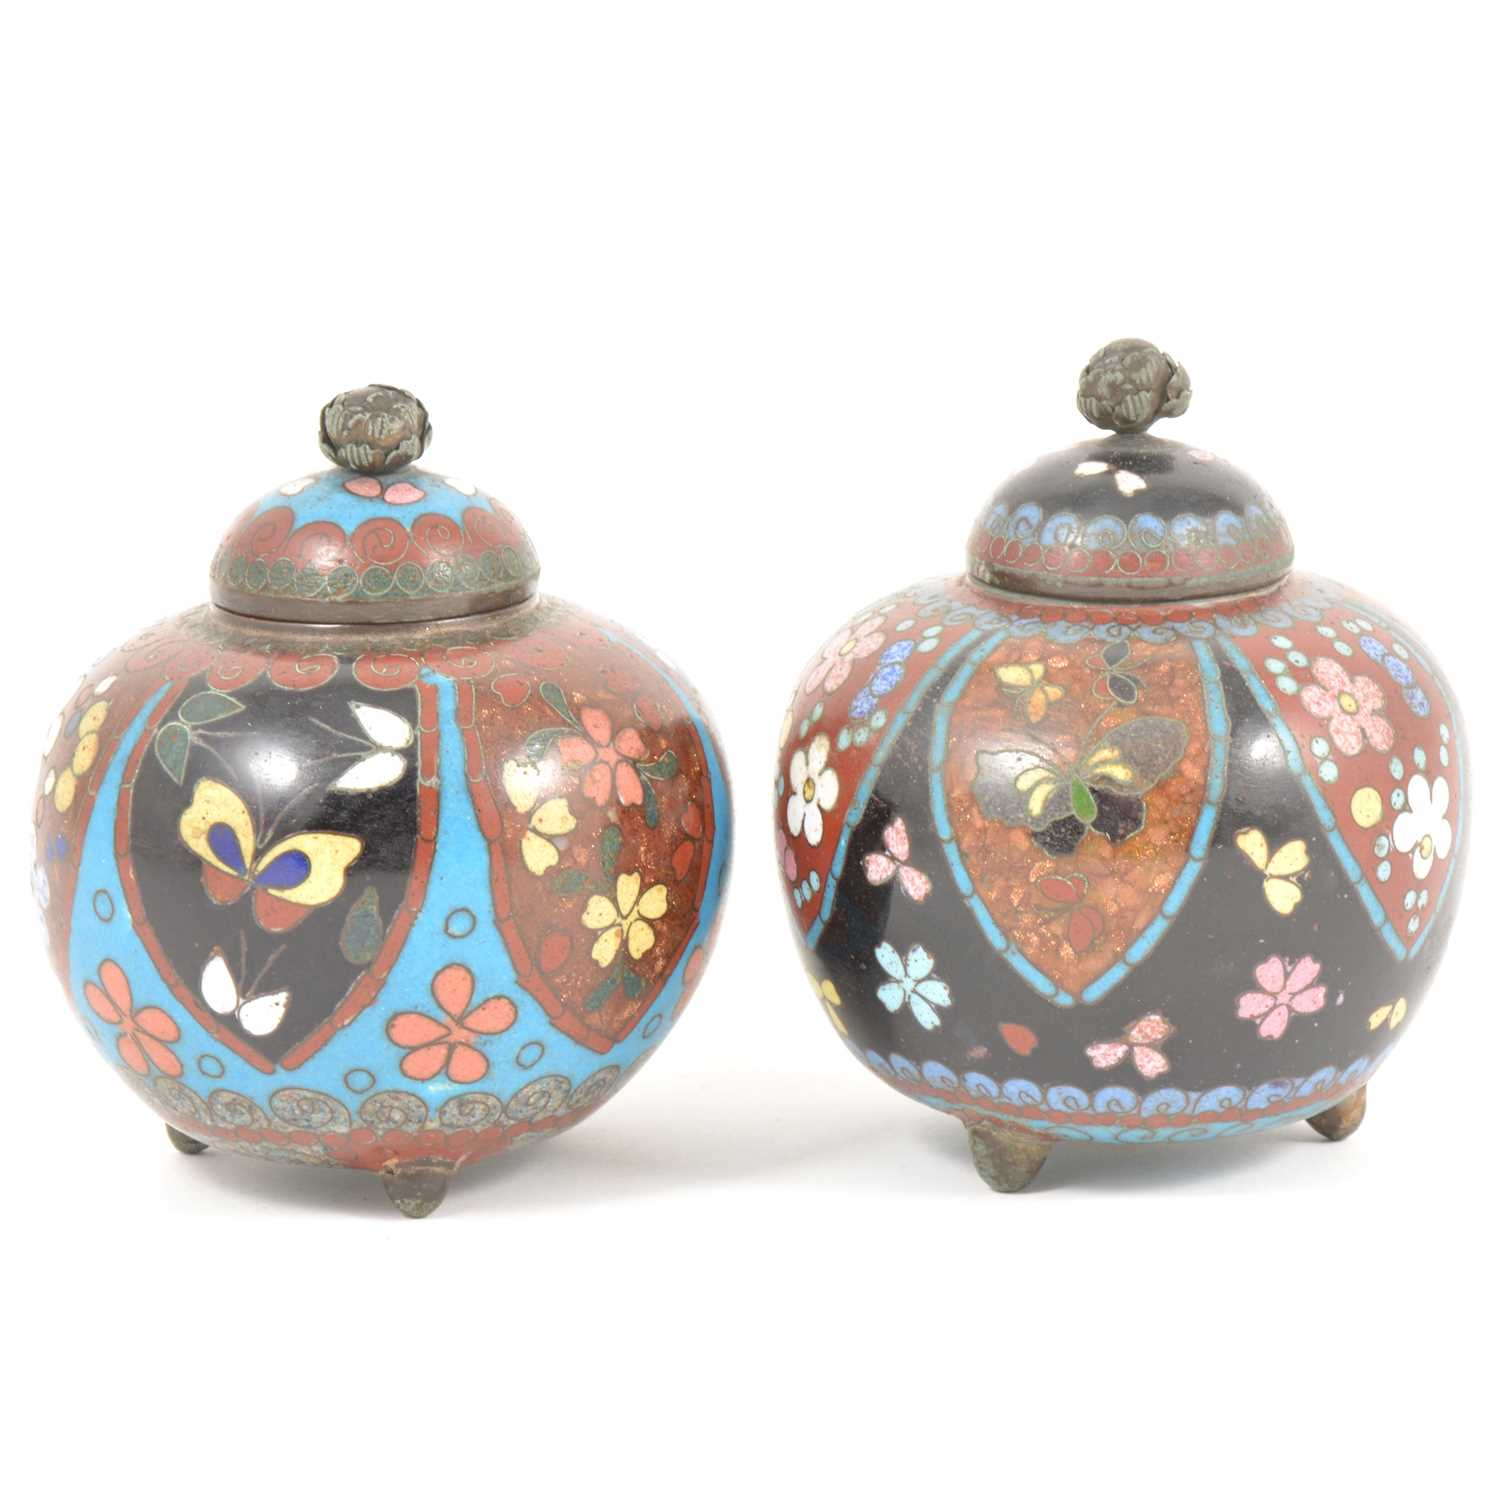 Lot 28-Pair of small Japanese cloisonne vases